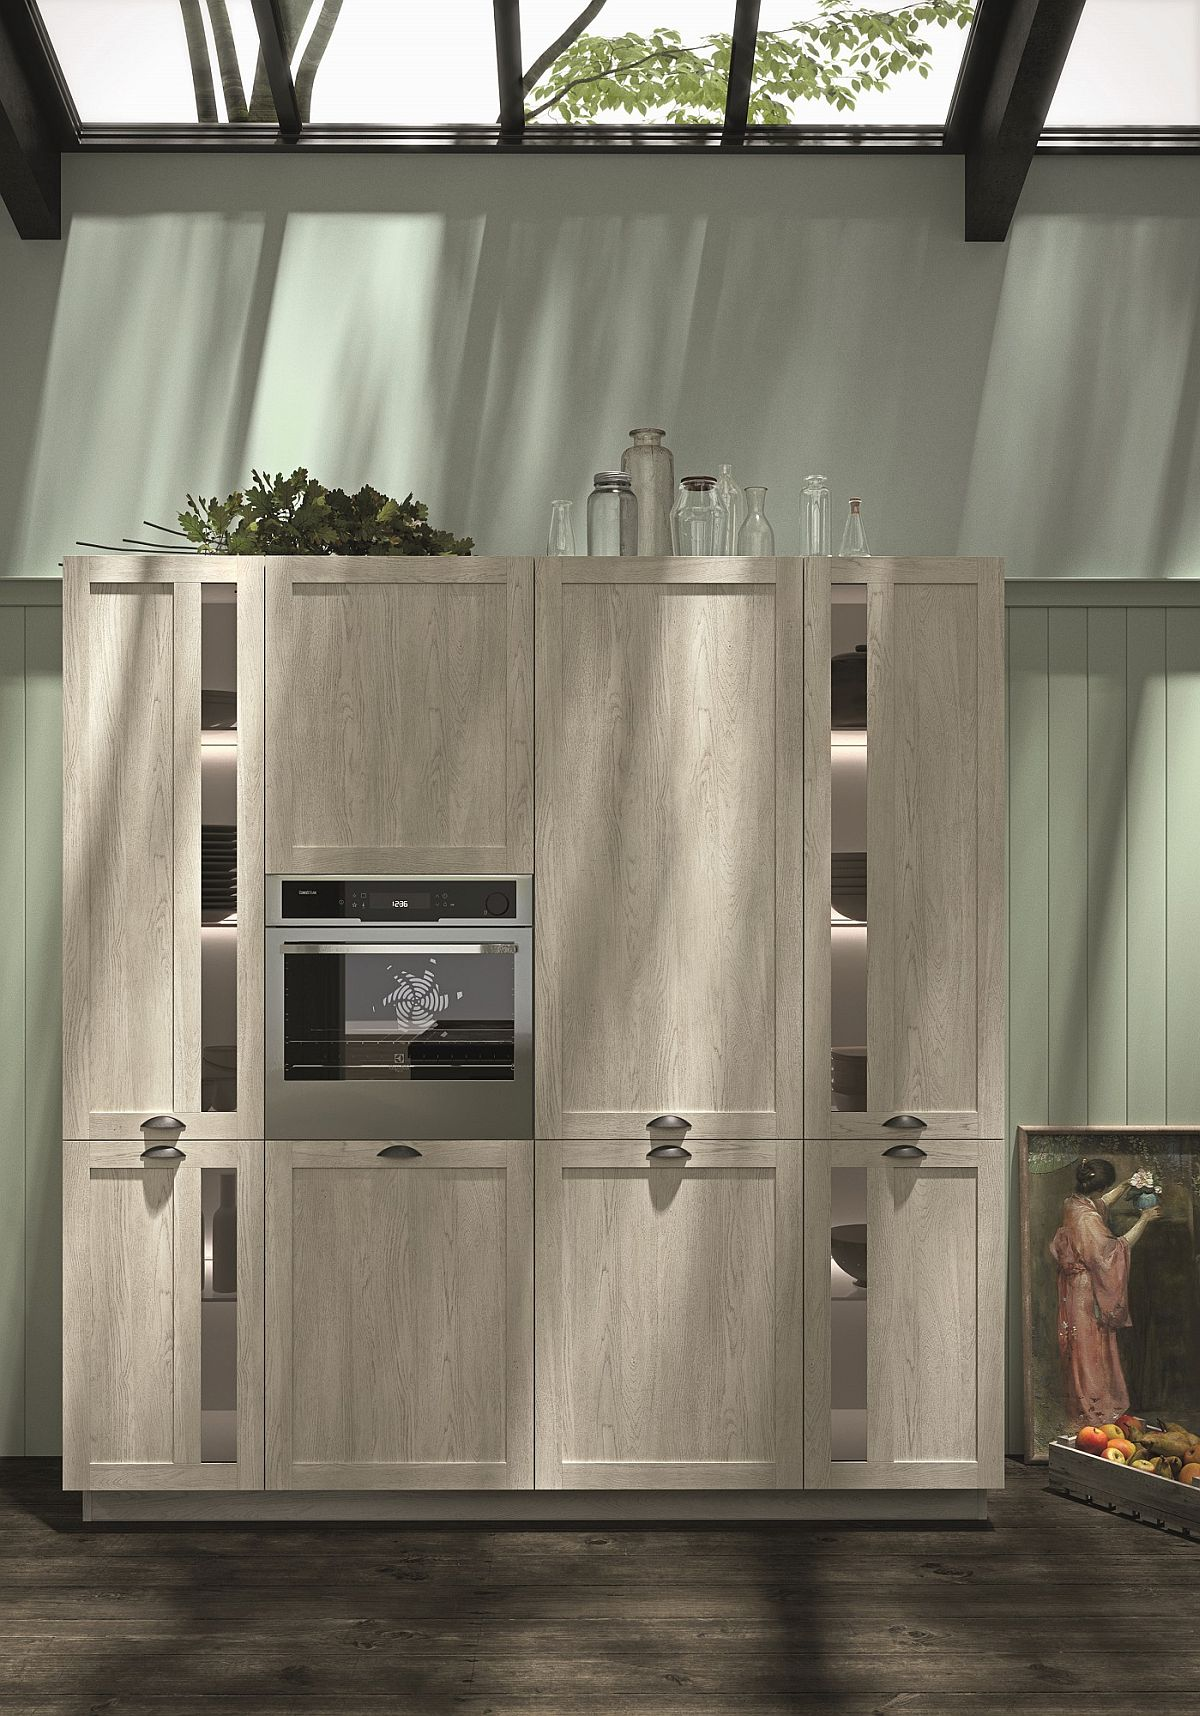 Combining contemporary appliances with classic kitchen units